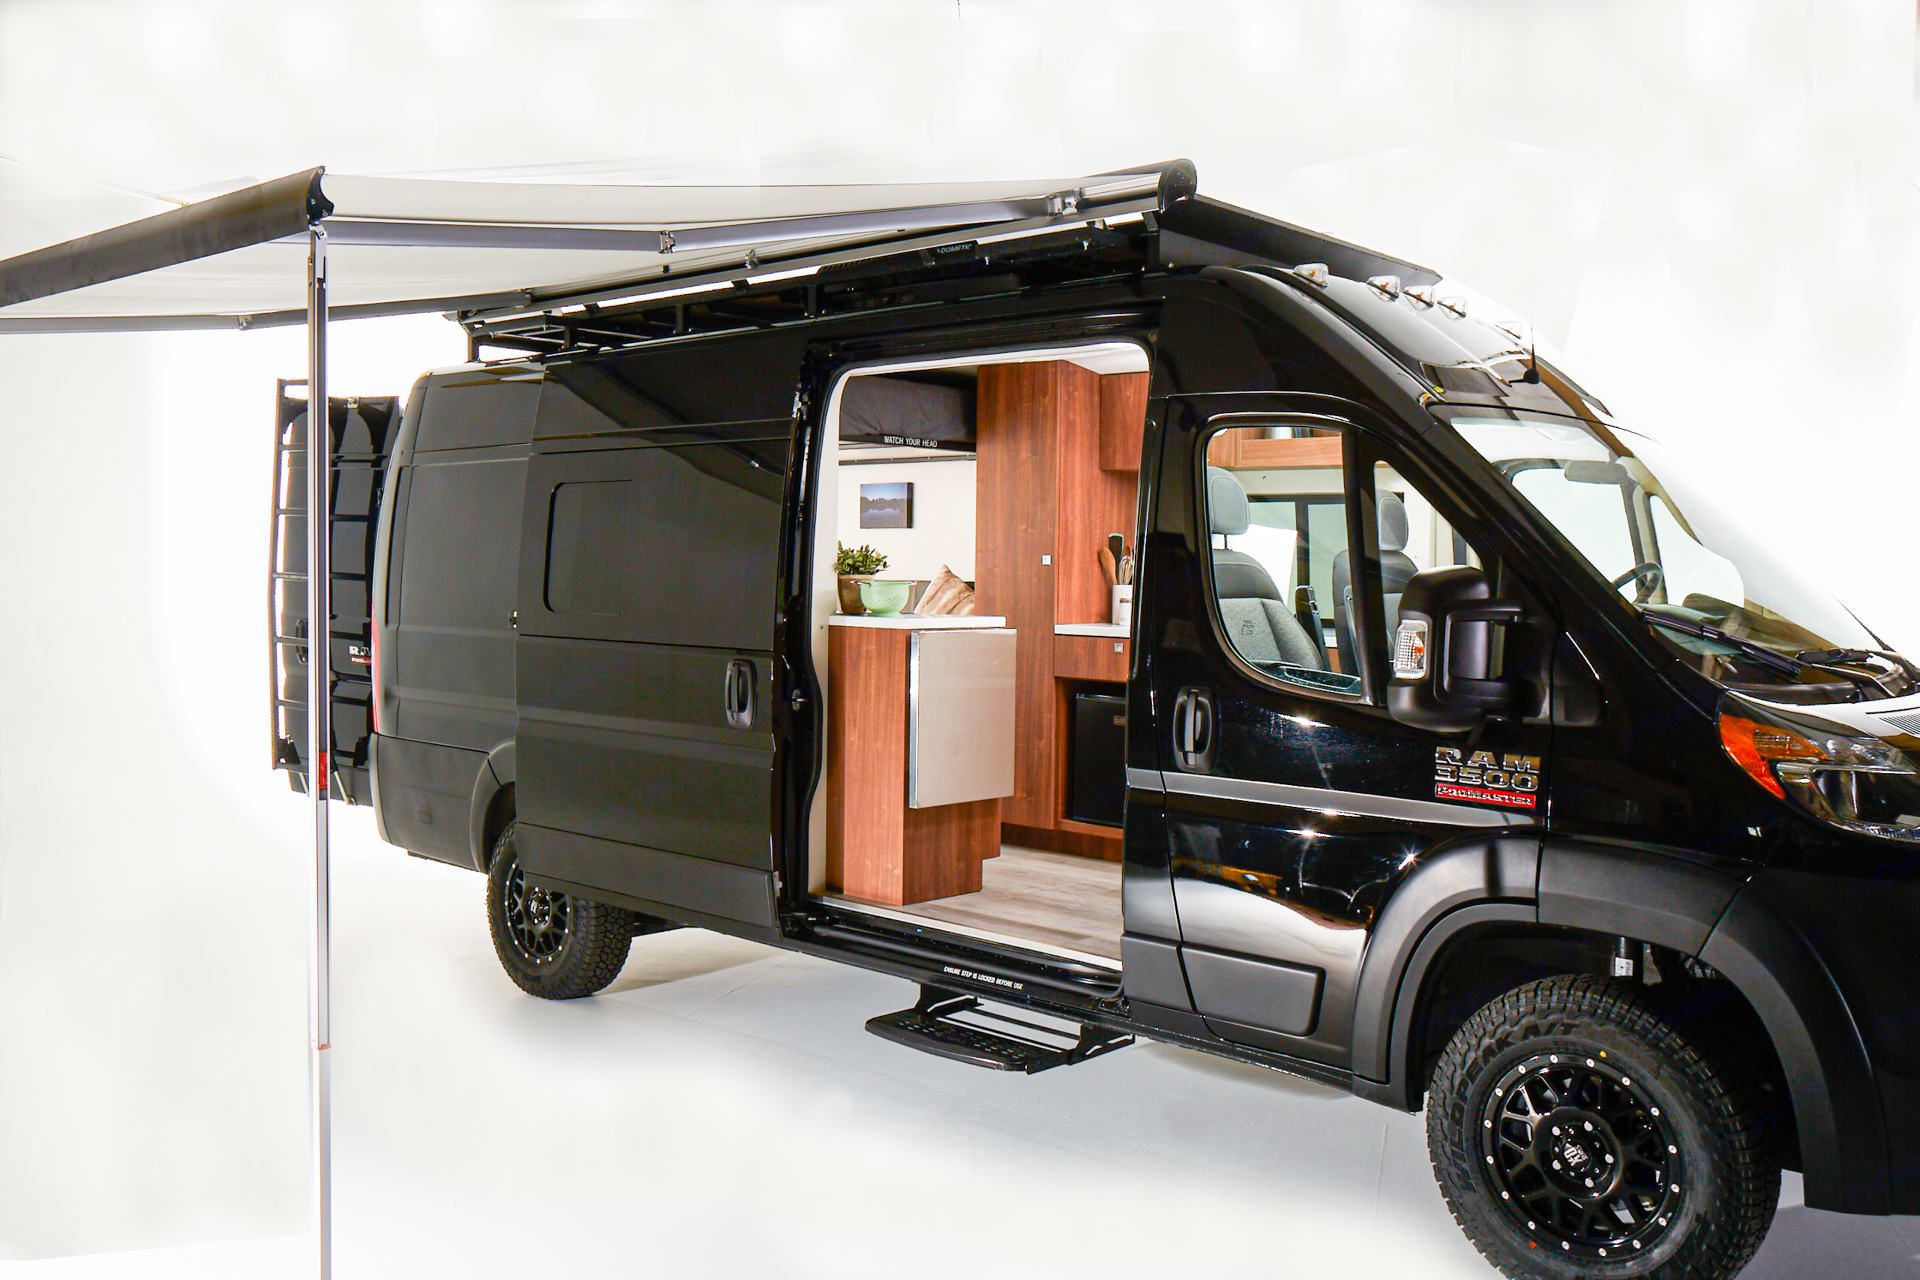 Powered awning and side door open. Interior lighting is on. (Props not included). RAM Promaster 3500 2020